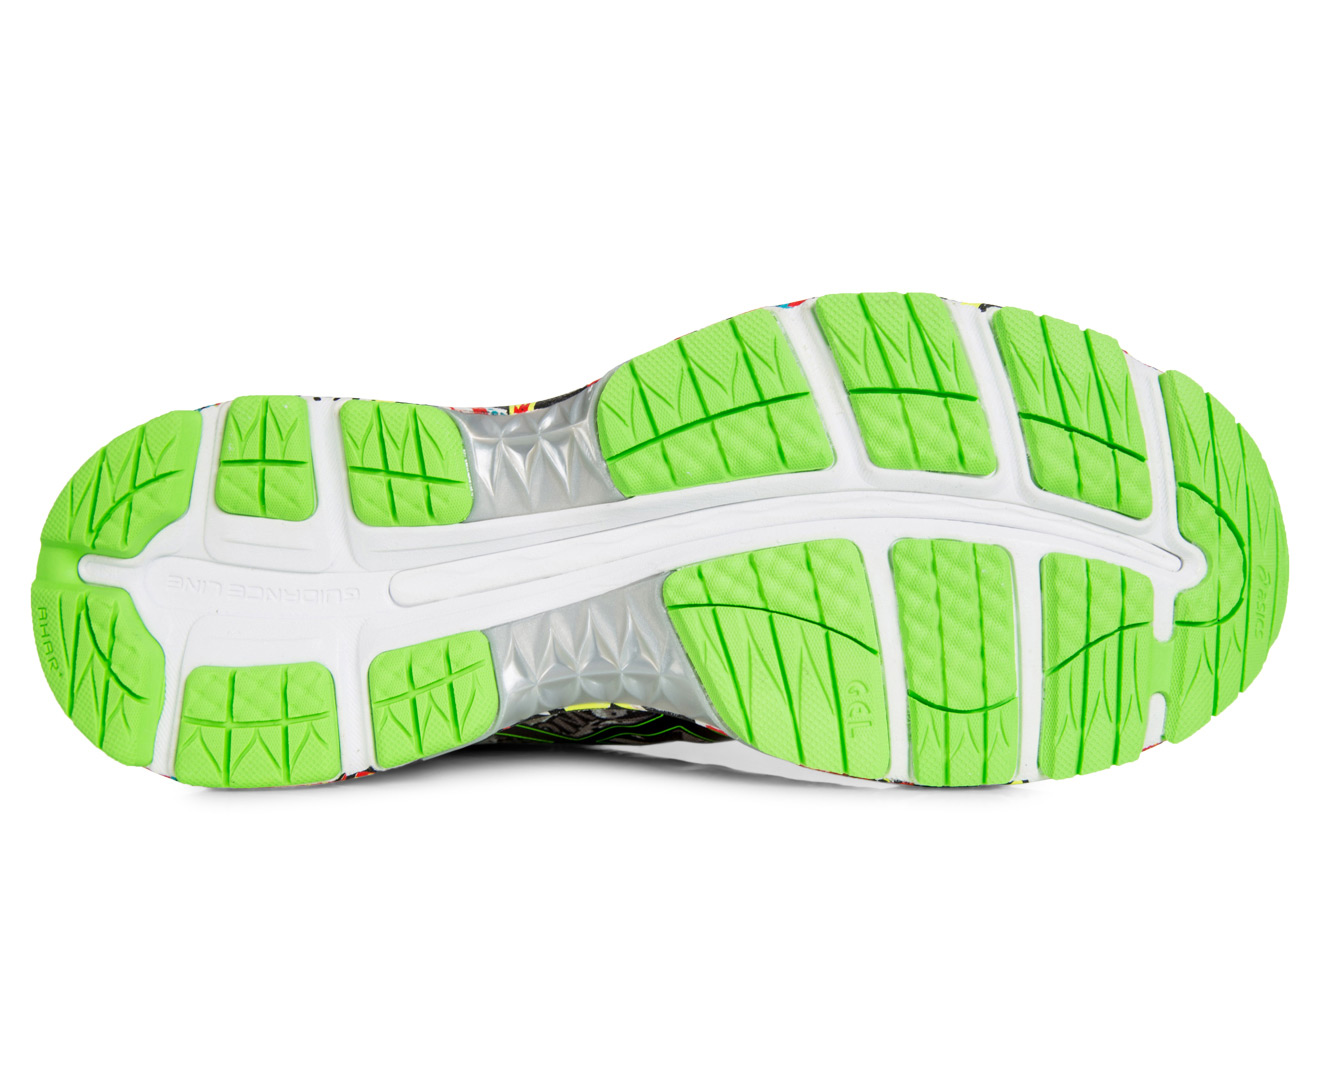 589975cc2a ASICS Men's GEL-Nimbus 18 Shoe - Carbon/Black/Green Gecko